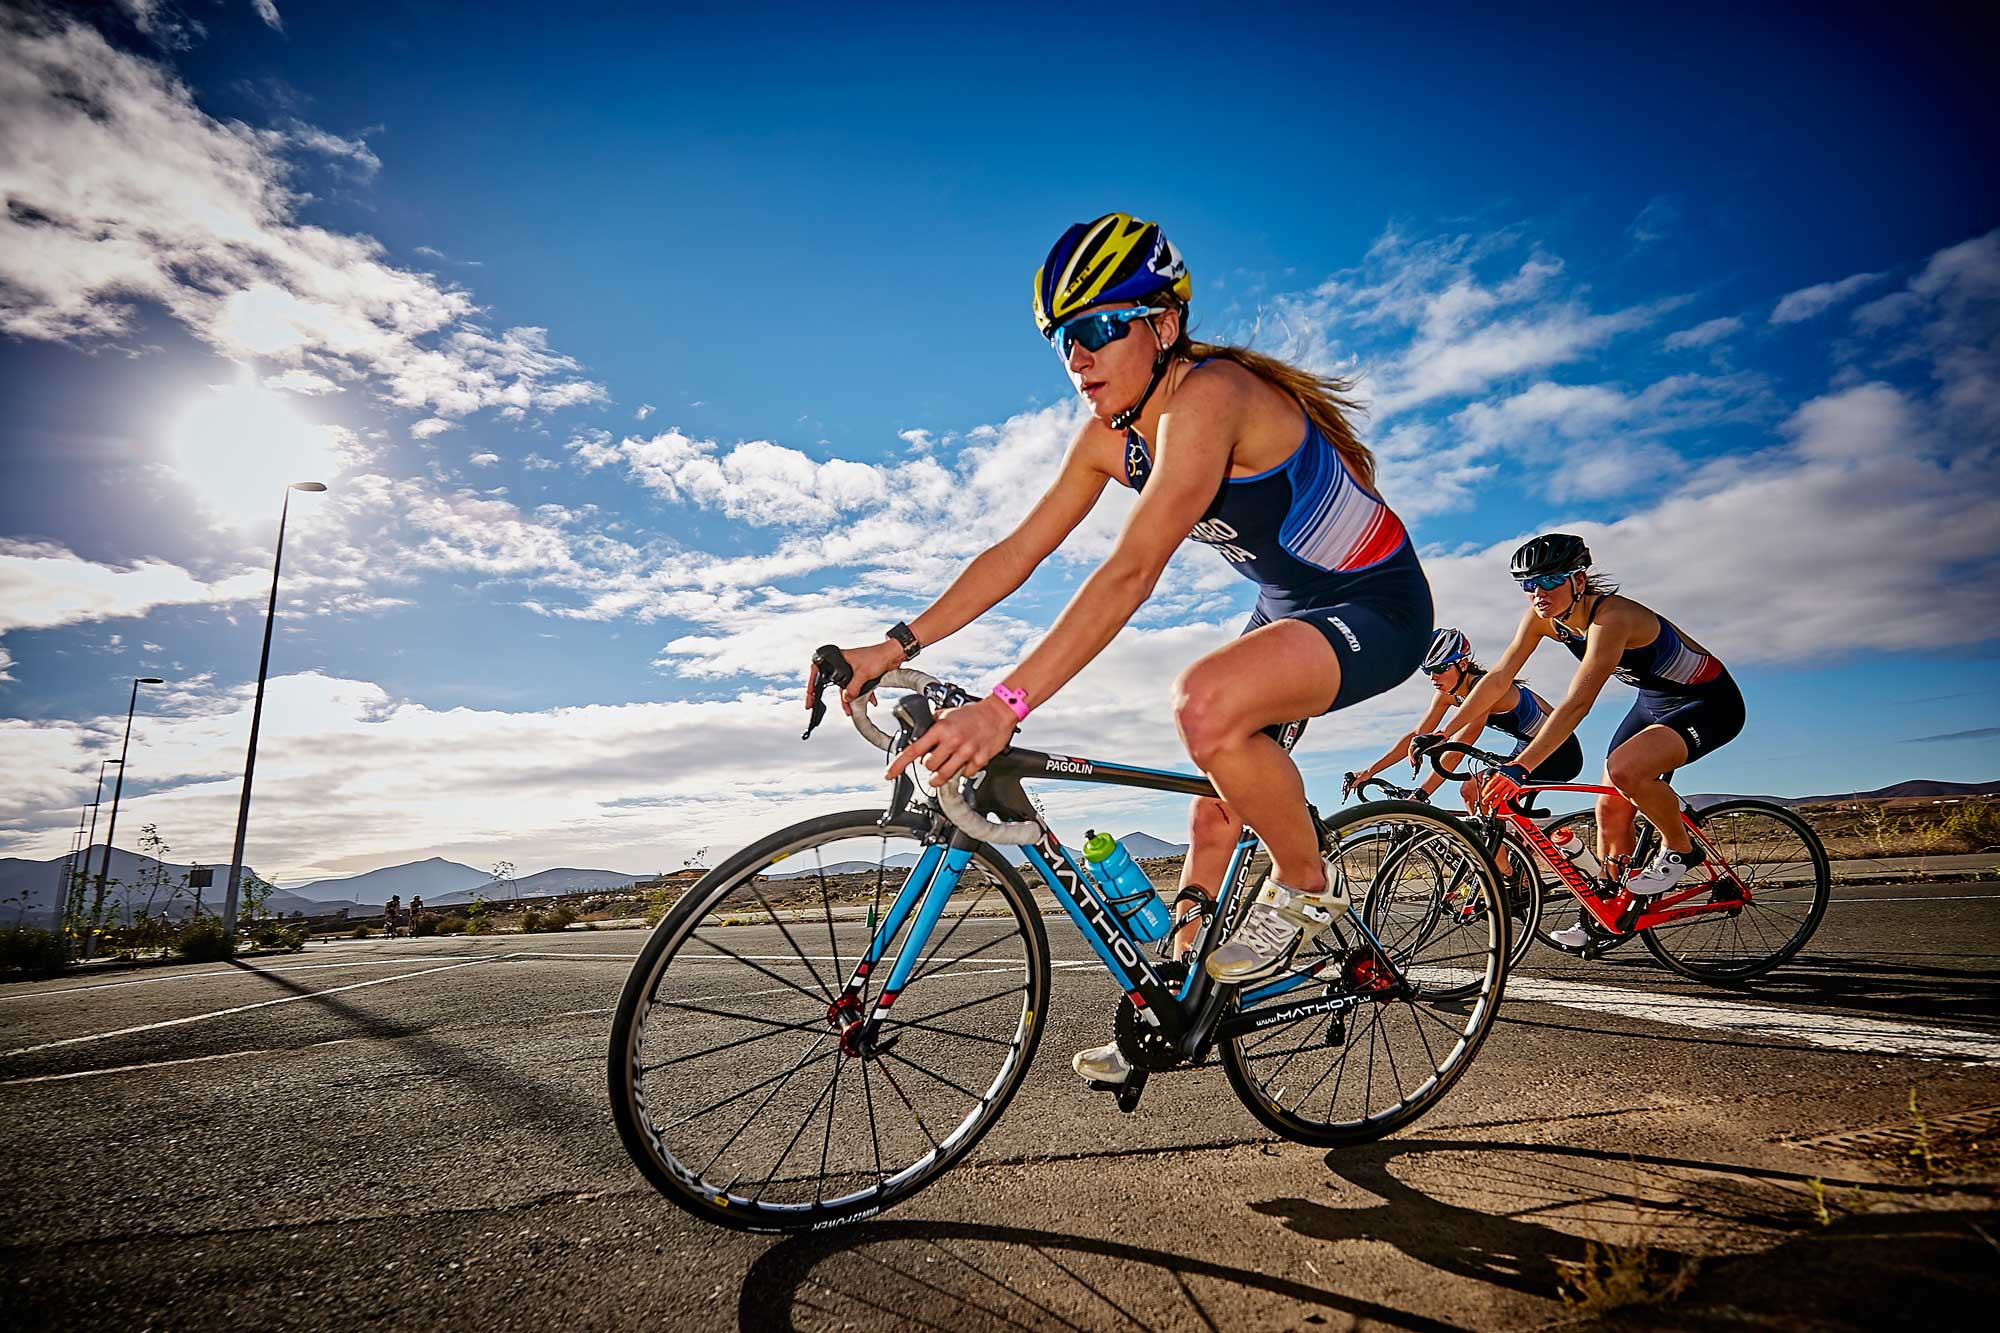 Cycling - Femme